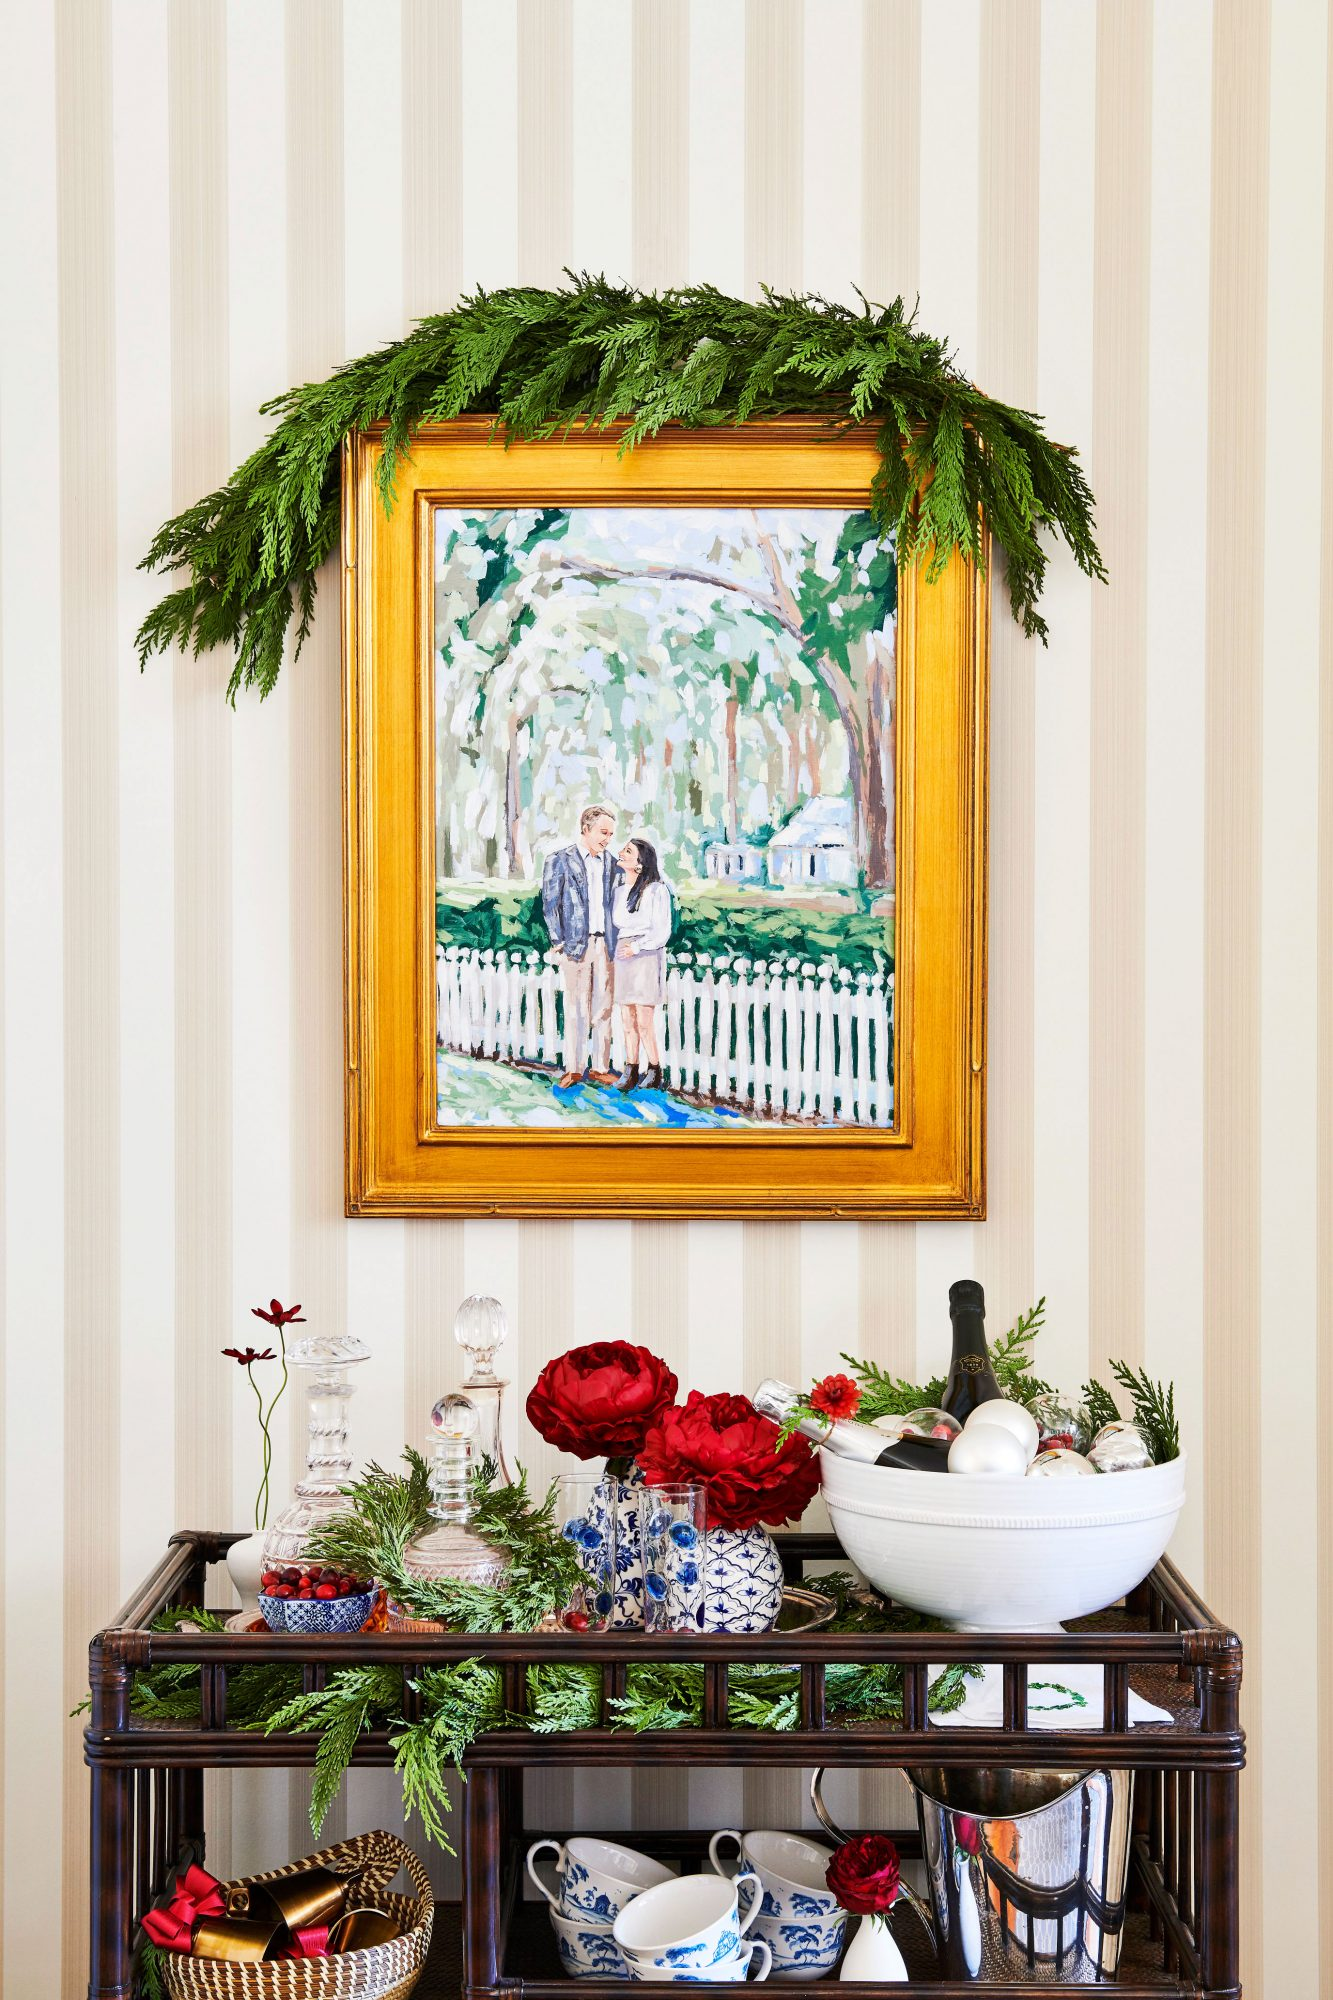 Festive bar cart and couple portrait decorated for the holidays